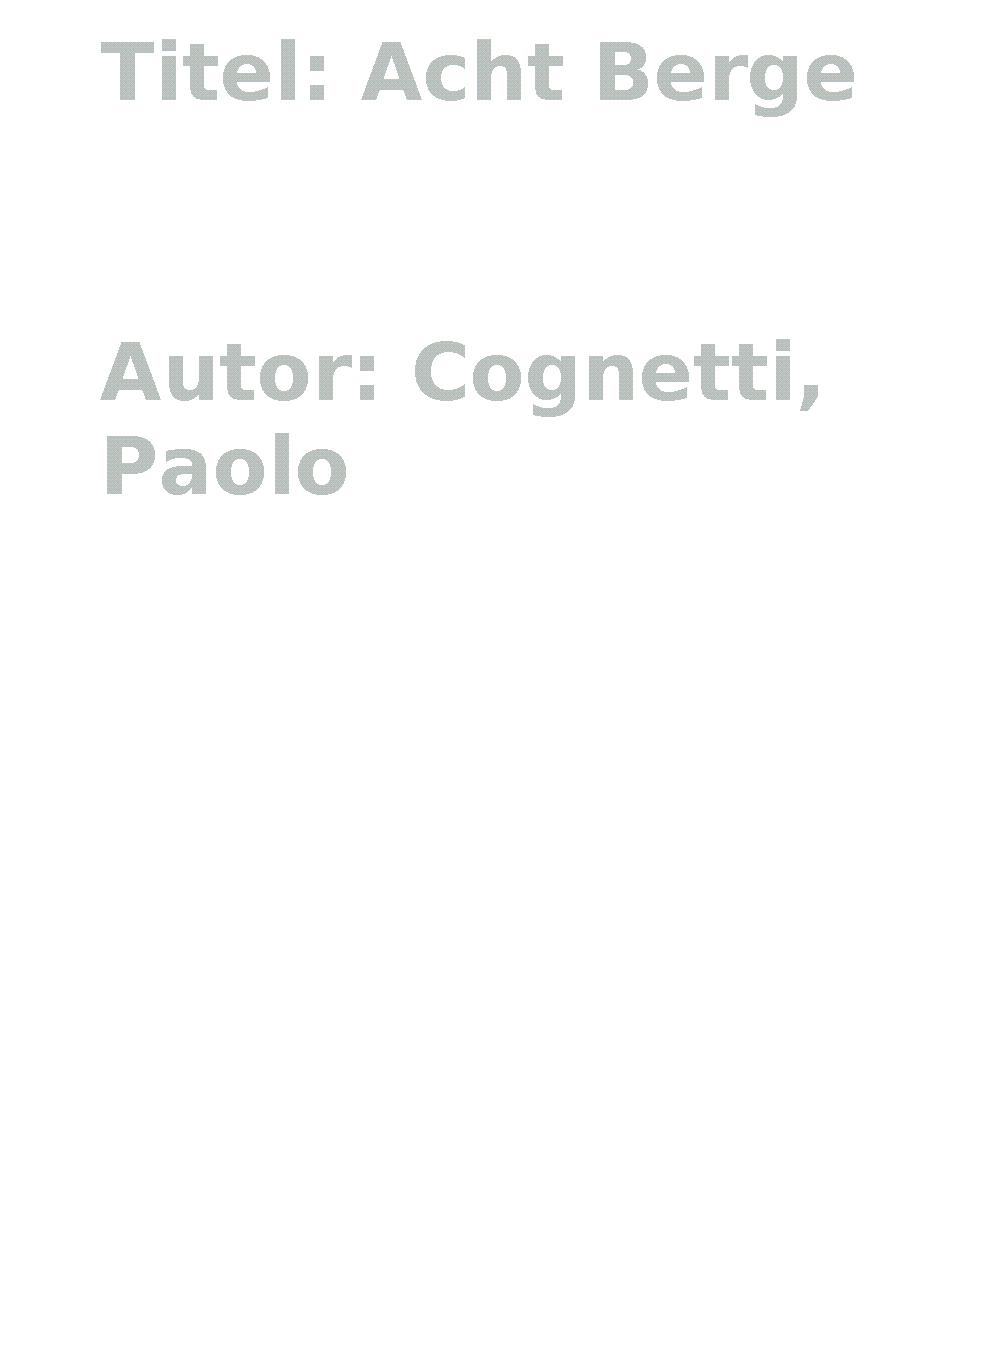 Acht Berge, Paolo Cognetti